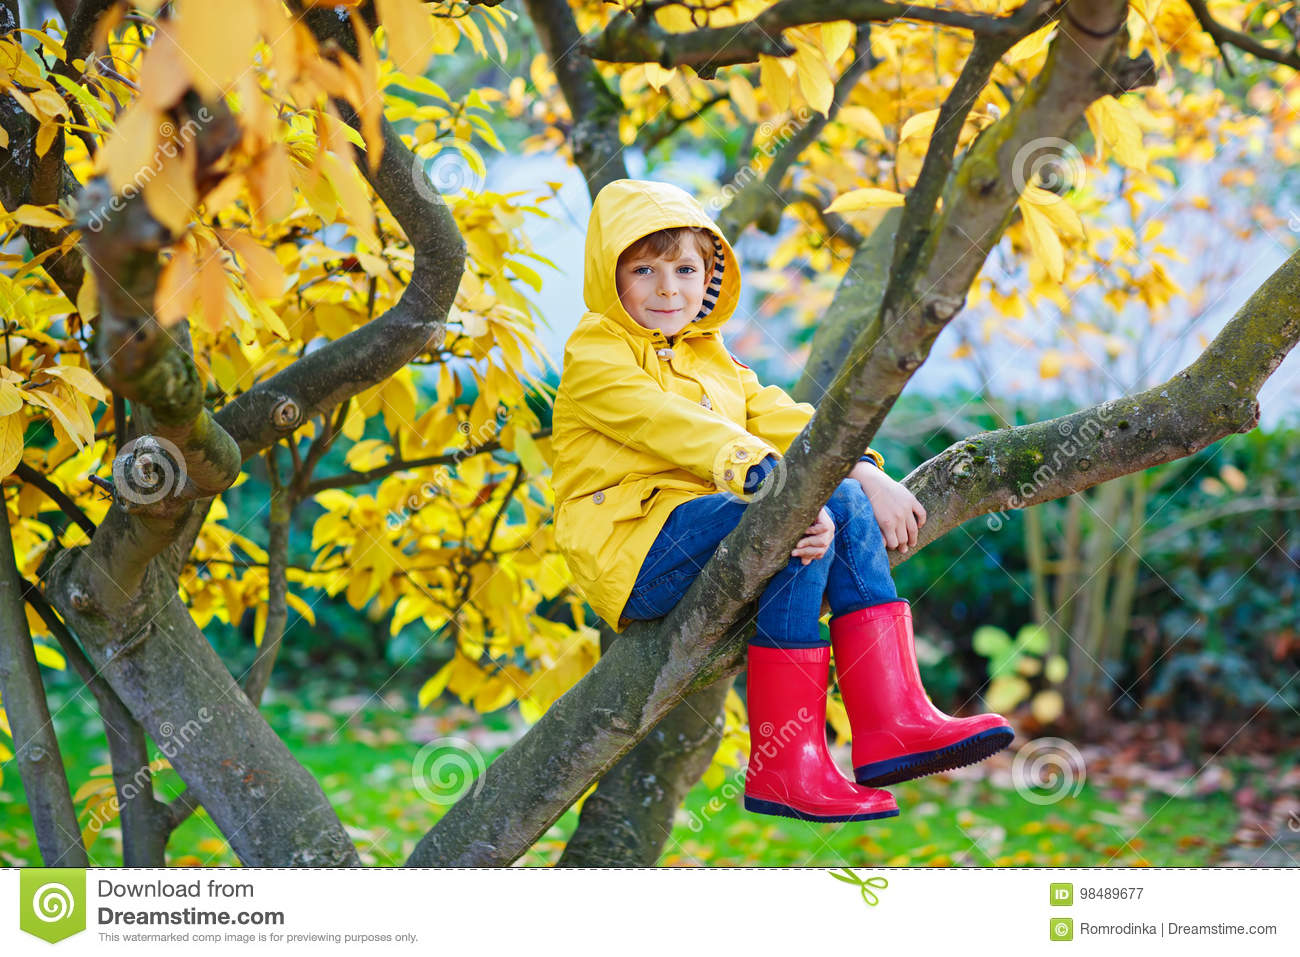 Little kid boy in colorful clothes enjoying climbing on tree on